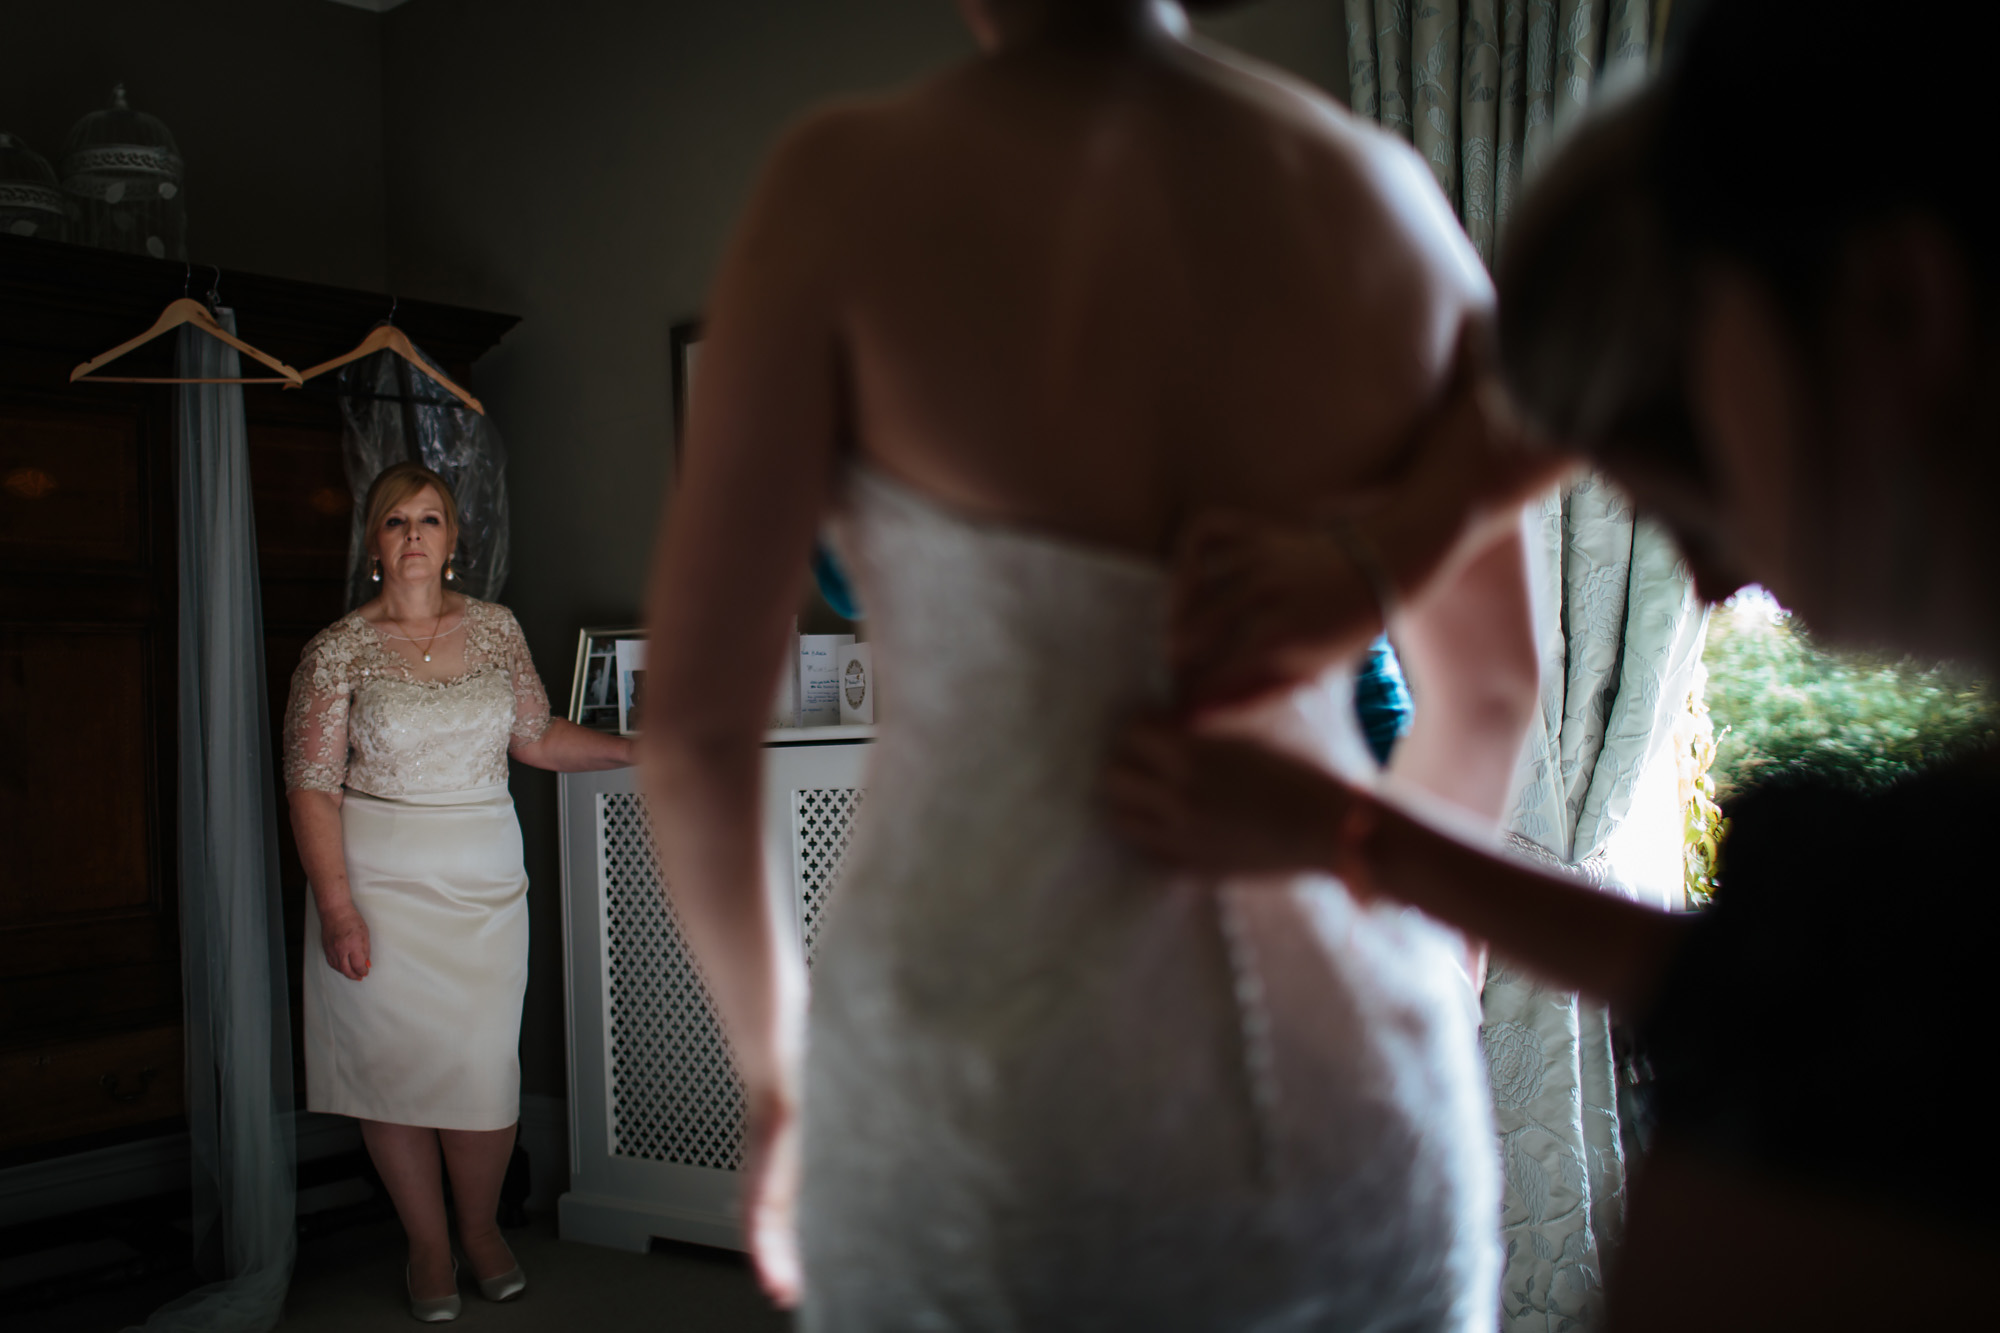 Brides mother watches her daughter have her dress buttoned up